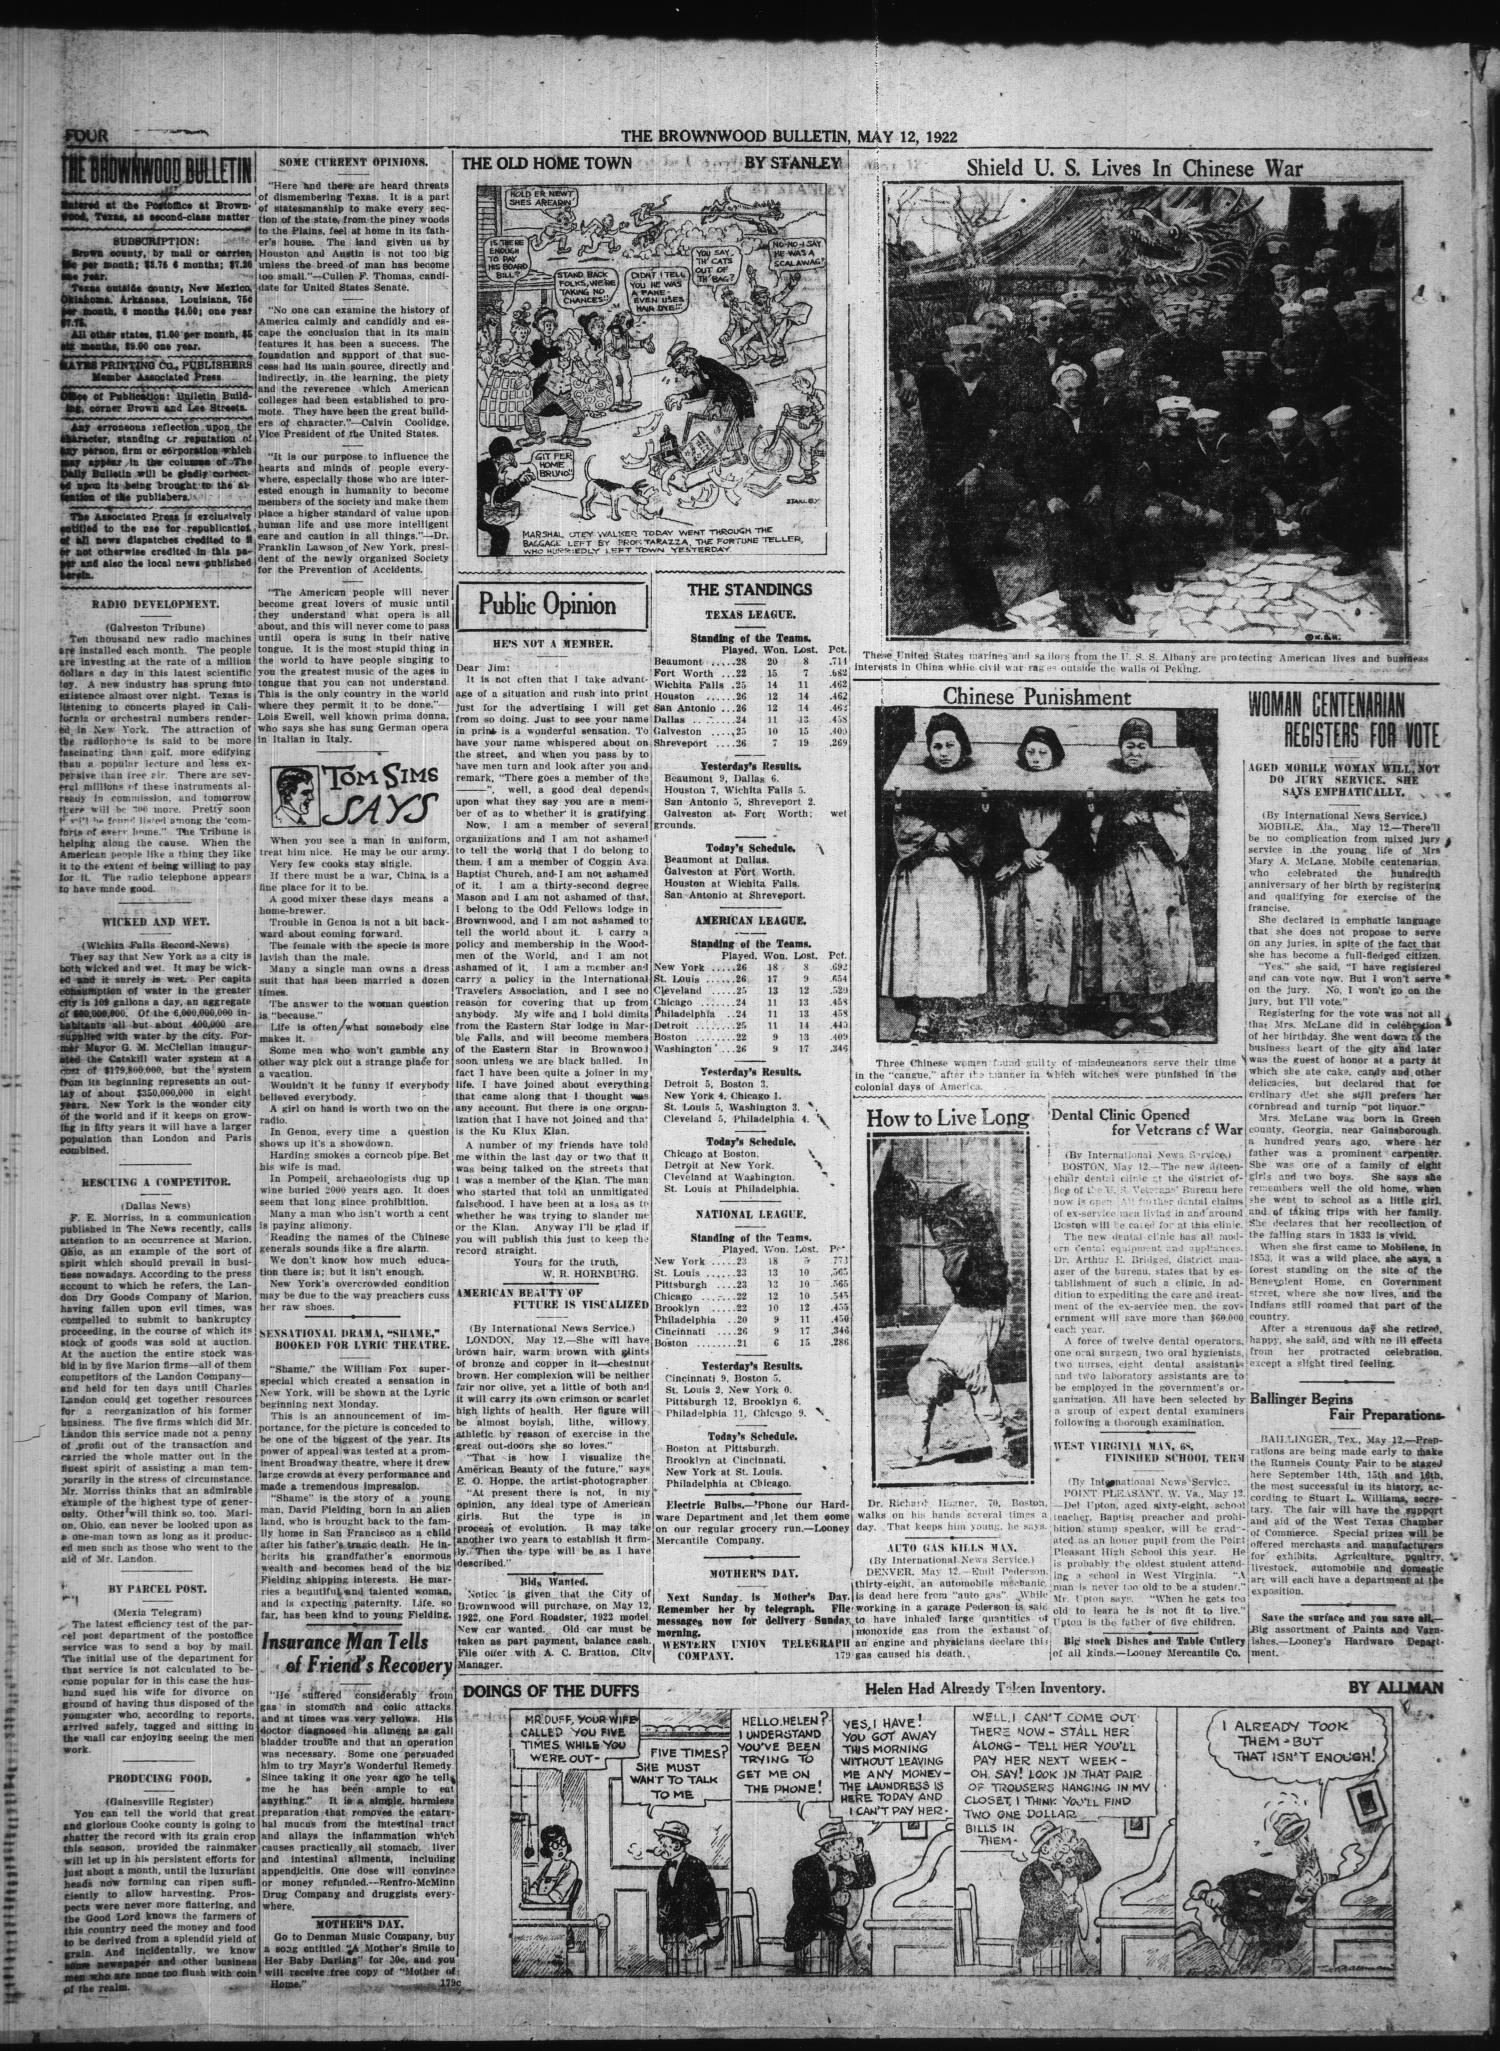 Brownwood Bulletin (Brownwood, Tex.), Vol. 22, No. 178, Ed. 1 Friday, May 12, 1922                                                                                                      [Sequence #]: 4 of 6